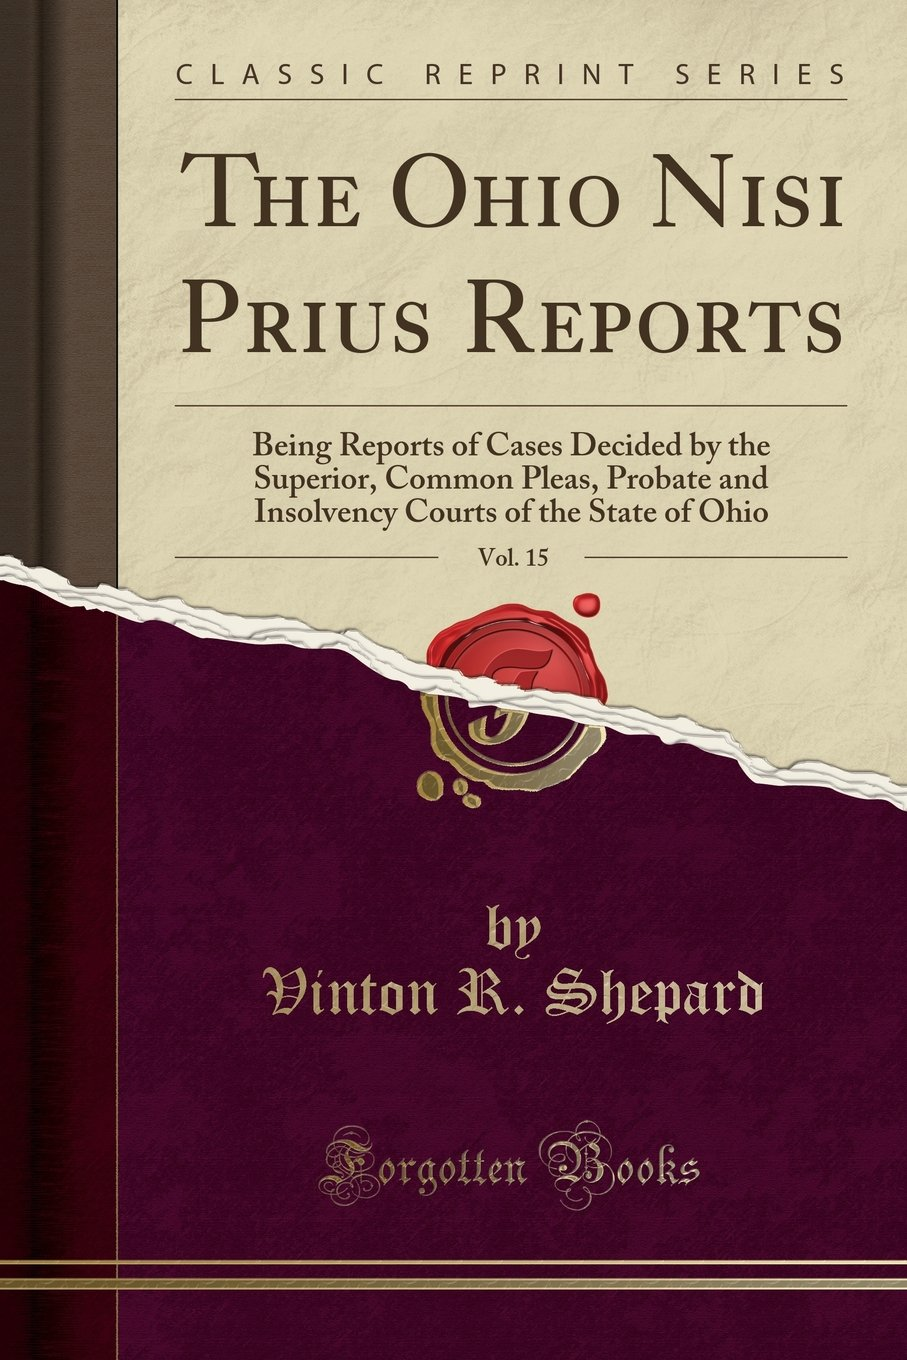 The Ohio Nisi Prius Reports, Vol. 15: Being Reports of Cases Decided by the Superior, Common Pleas, Probate and Insolvency Courts of the State of Ohio (Classic Reprint) ebook